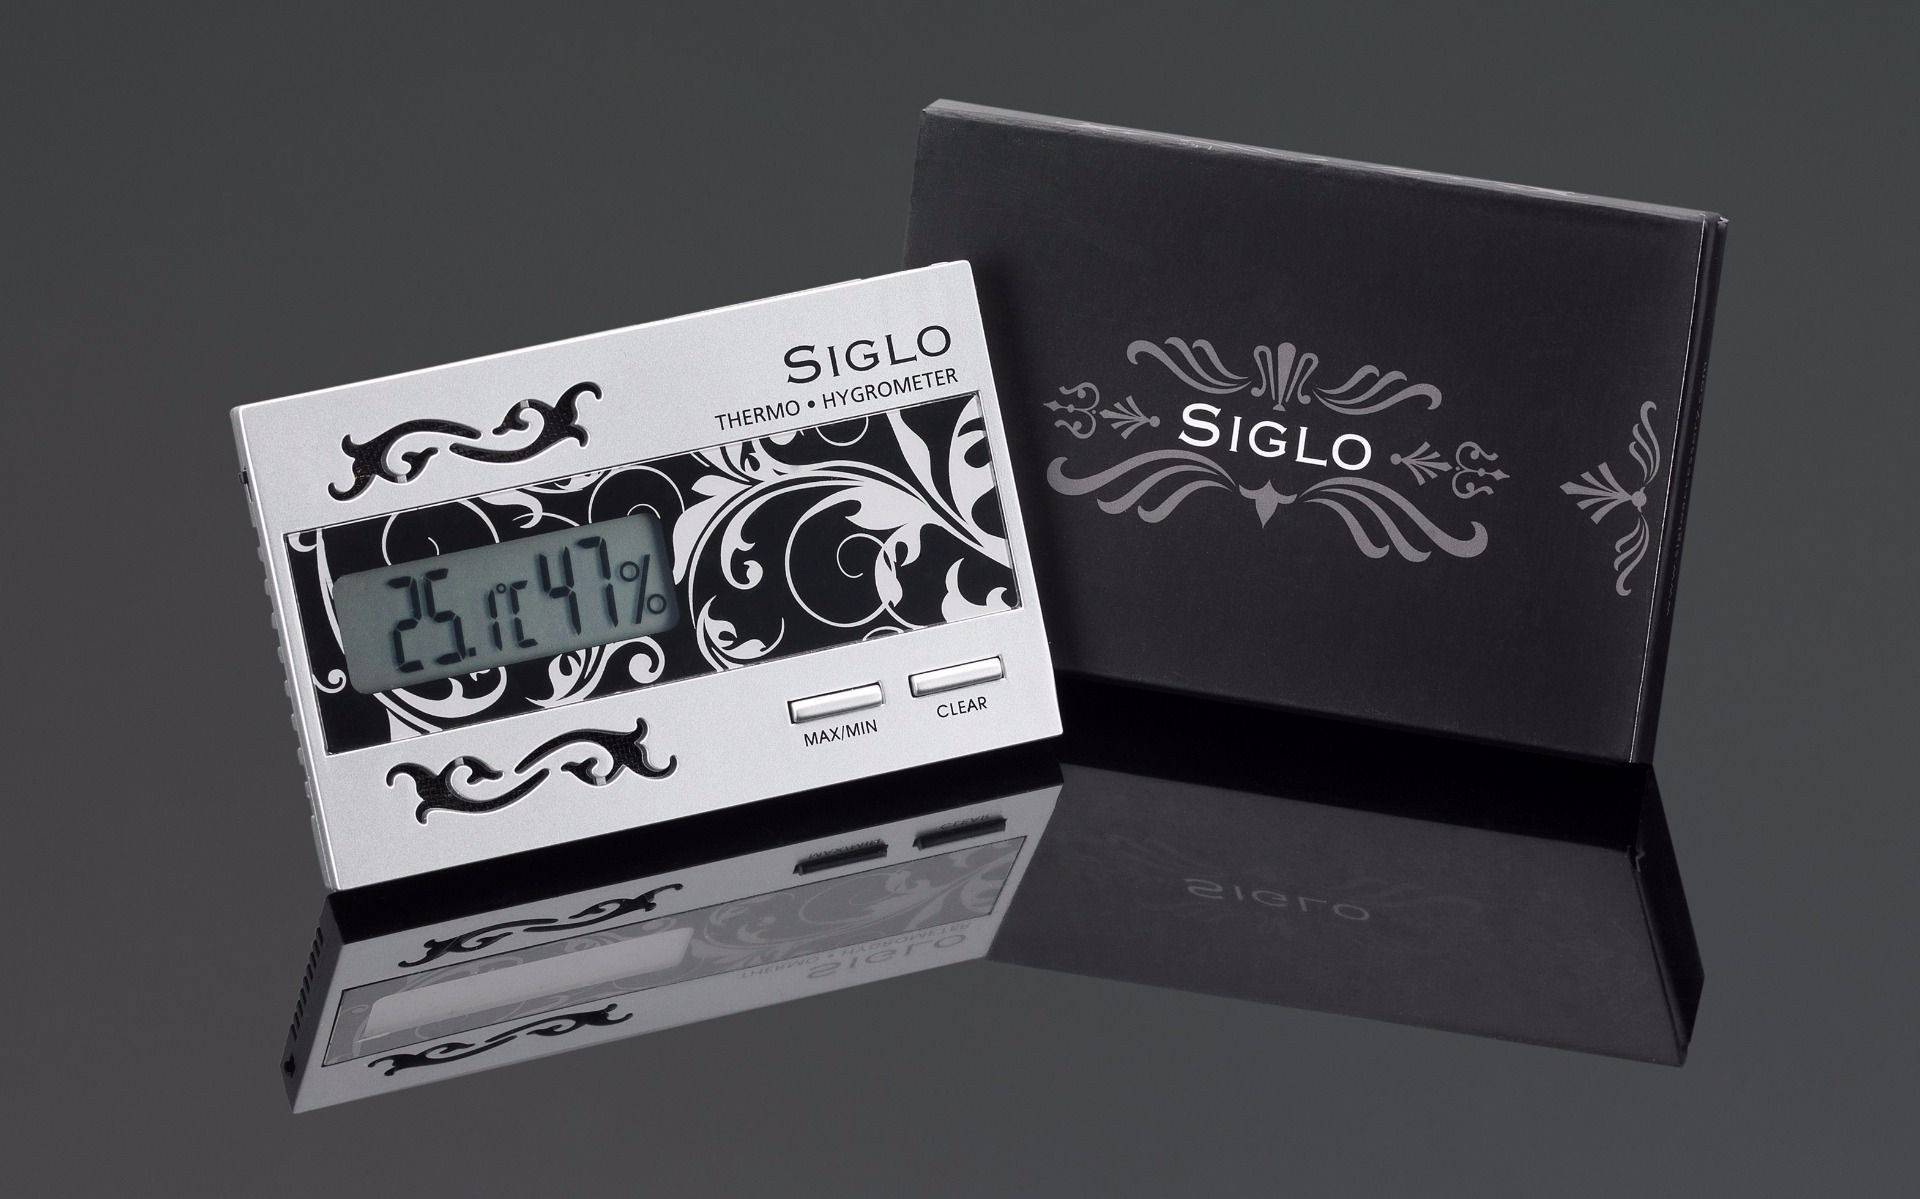 Siglo Digital Thermo Hygrometer